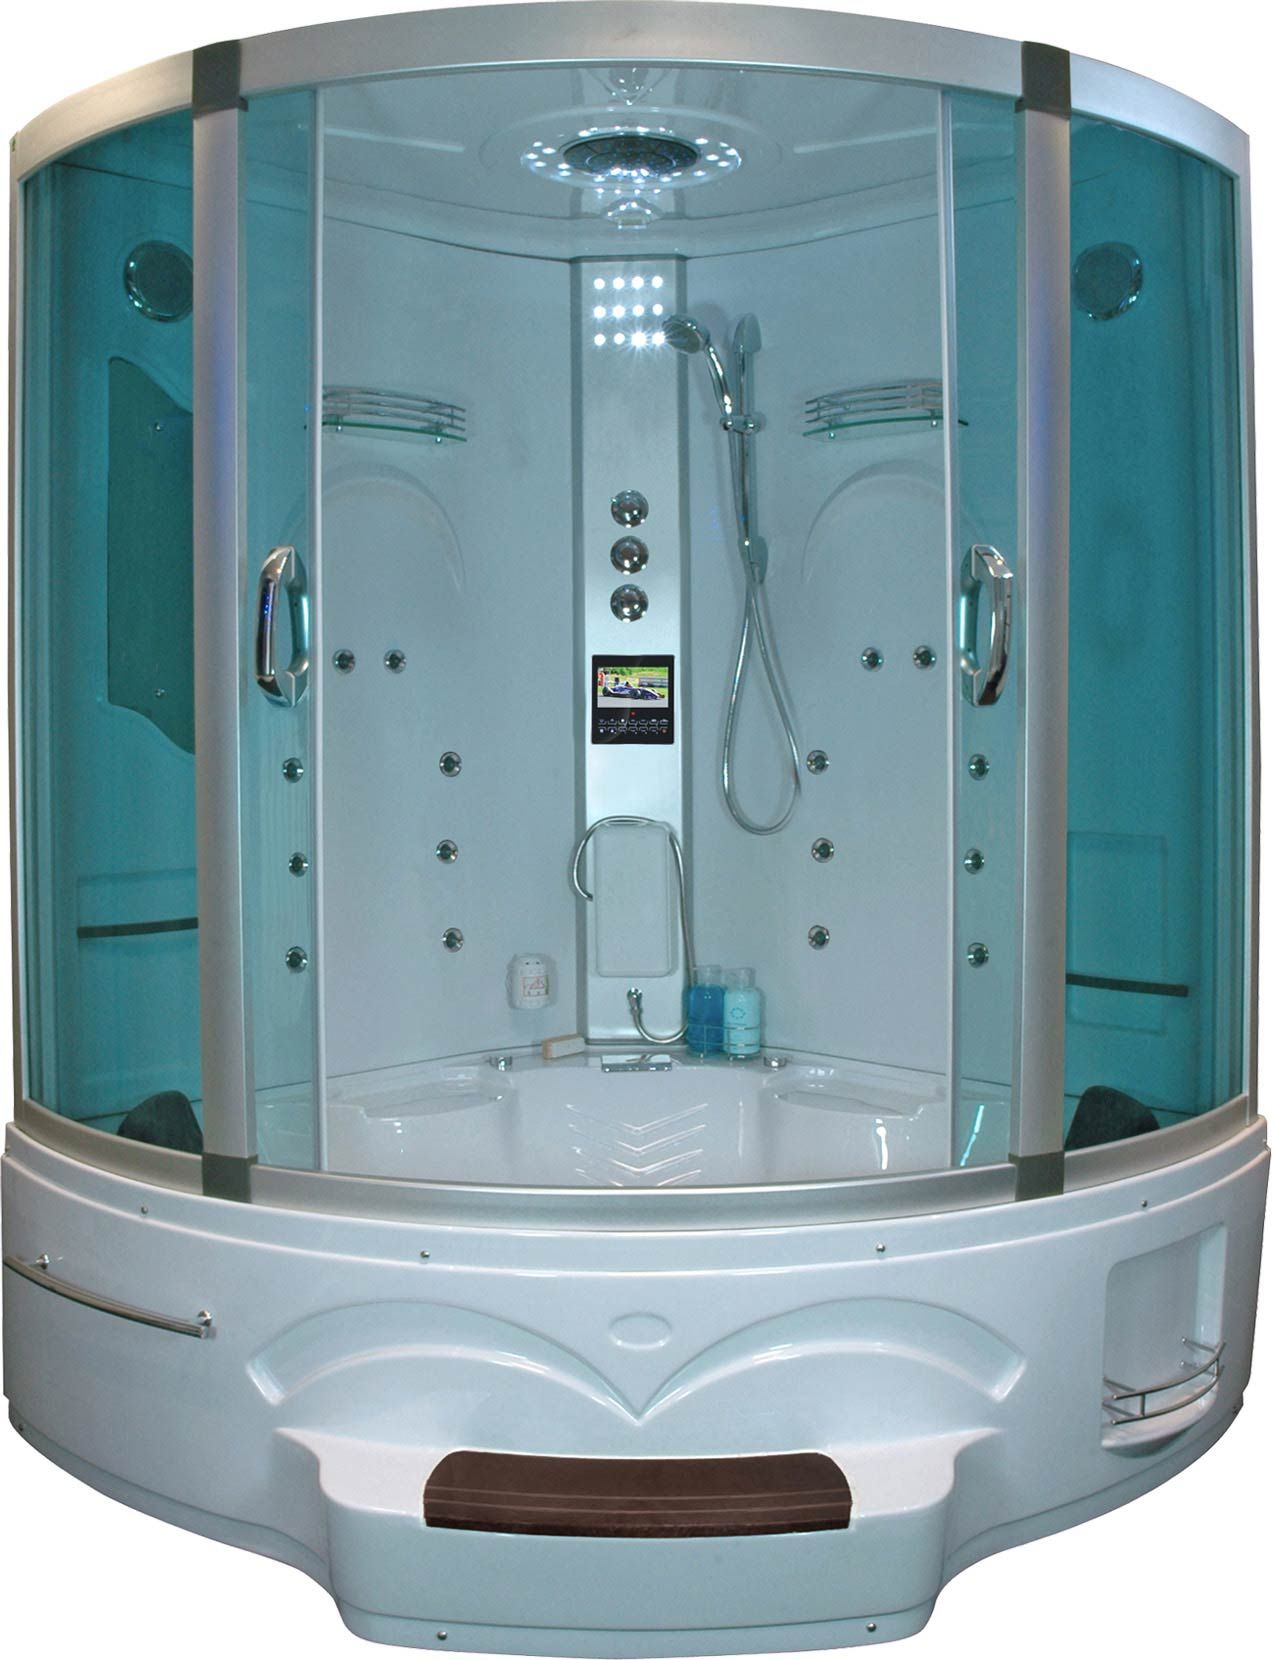 Bathroom Jacuzzi 2 person steam shower room with jacuzzi whirlpool and tv | dream